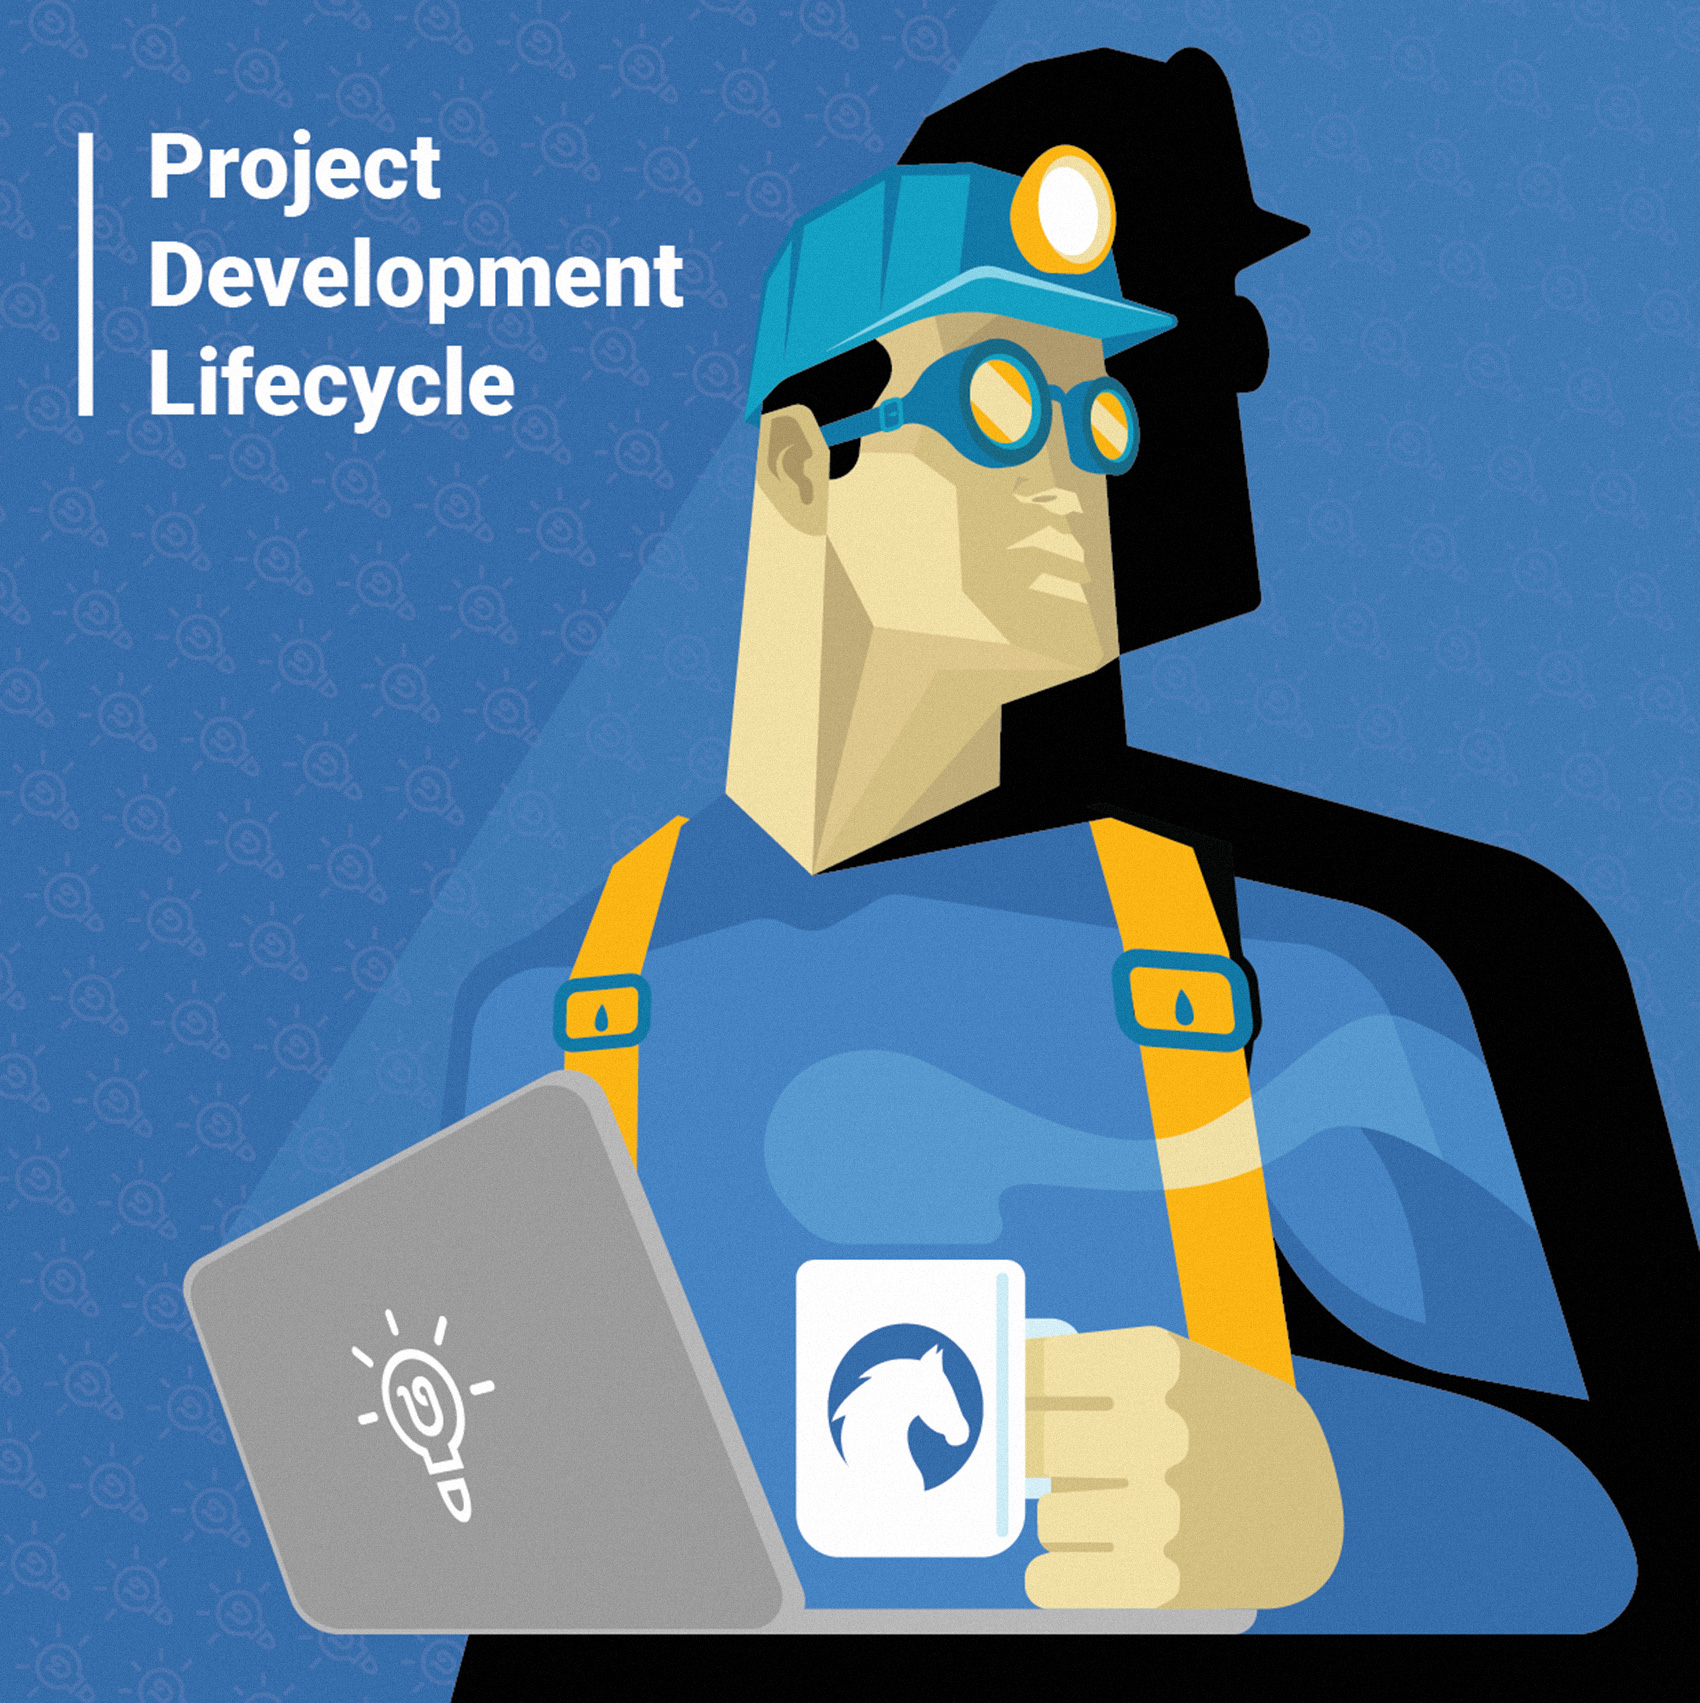 Project development lifecycle Cover illustration.jpg